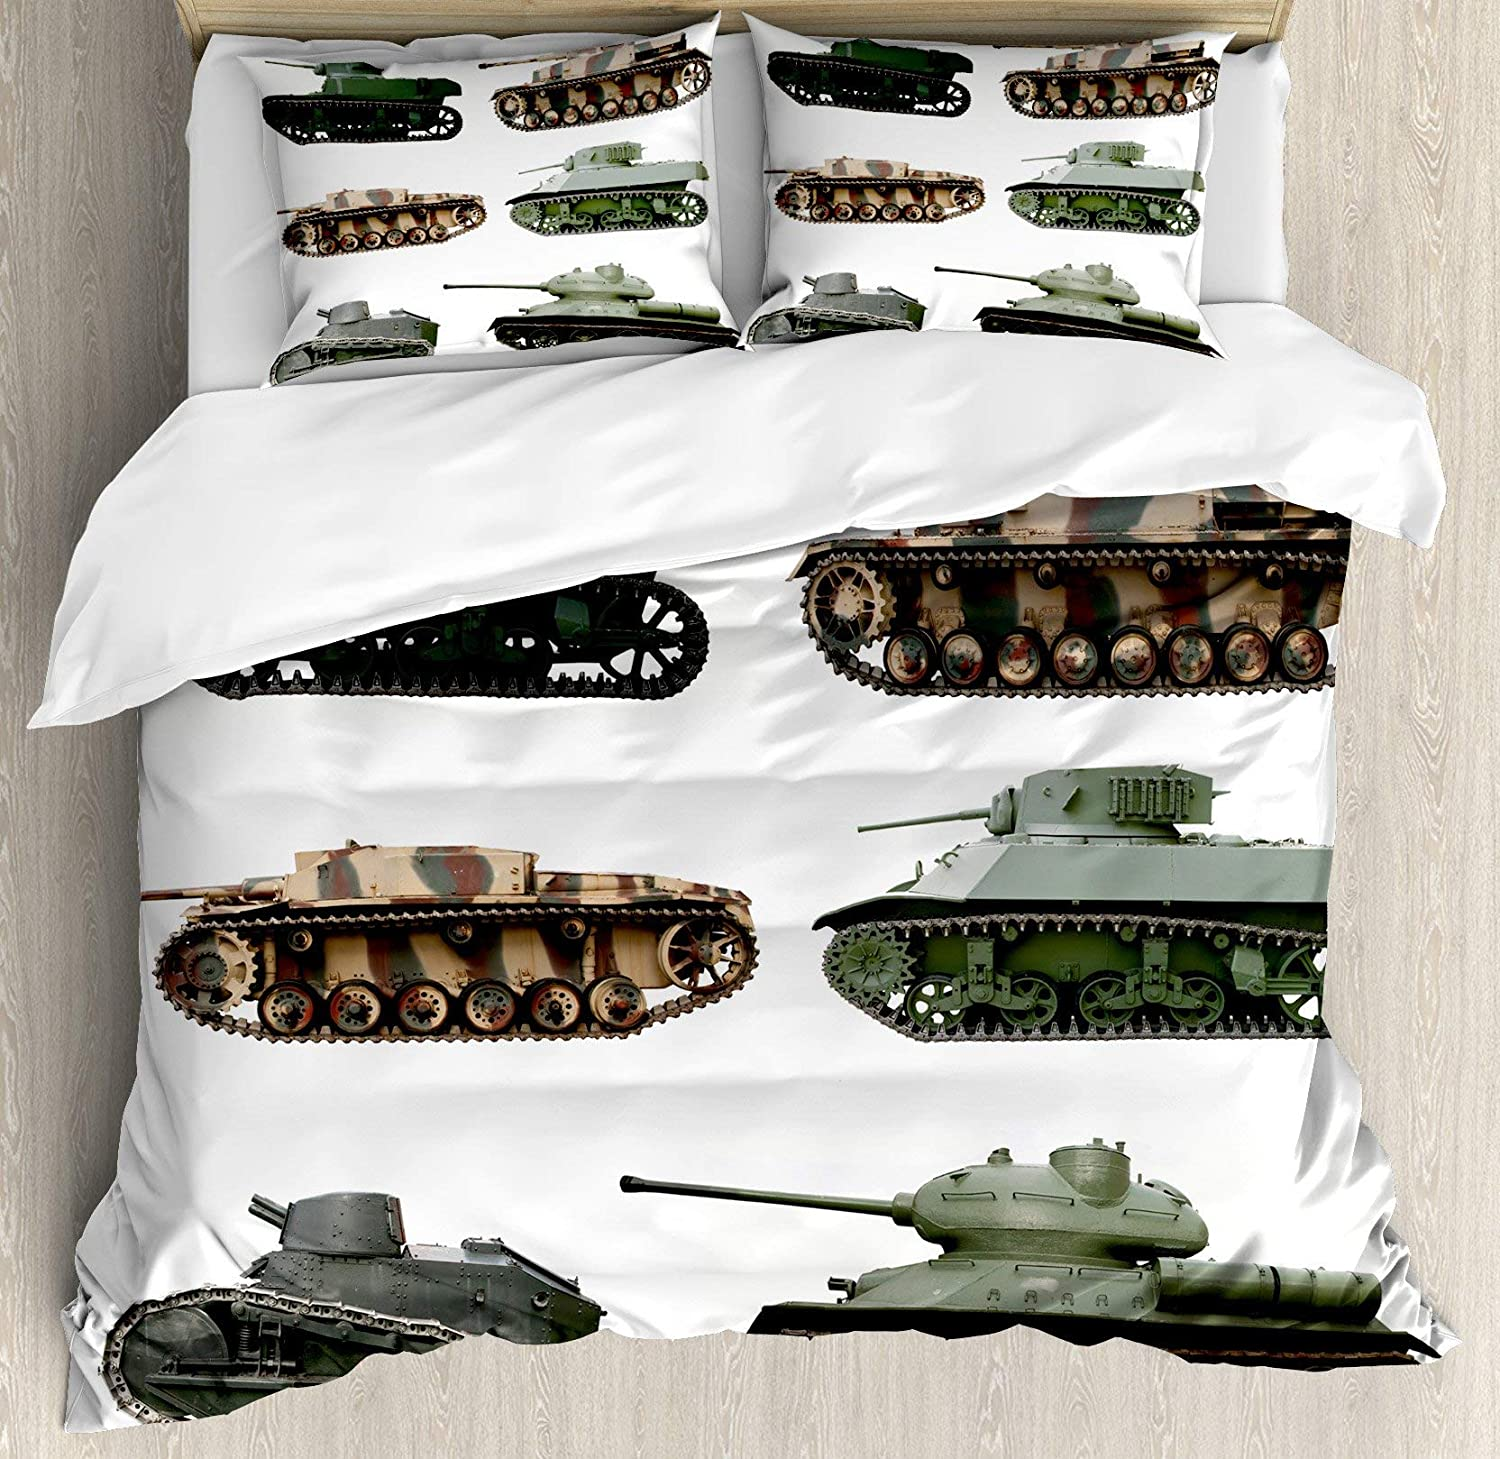 Amazon Com War Home Decor Duvet Cover Set Bed Sheets Second World War Armoured Tanks Camouflage Military Power Artillery Weapon 3 Piece Bedding Set Pillow Shams Twin Size Green White Home Kitchen